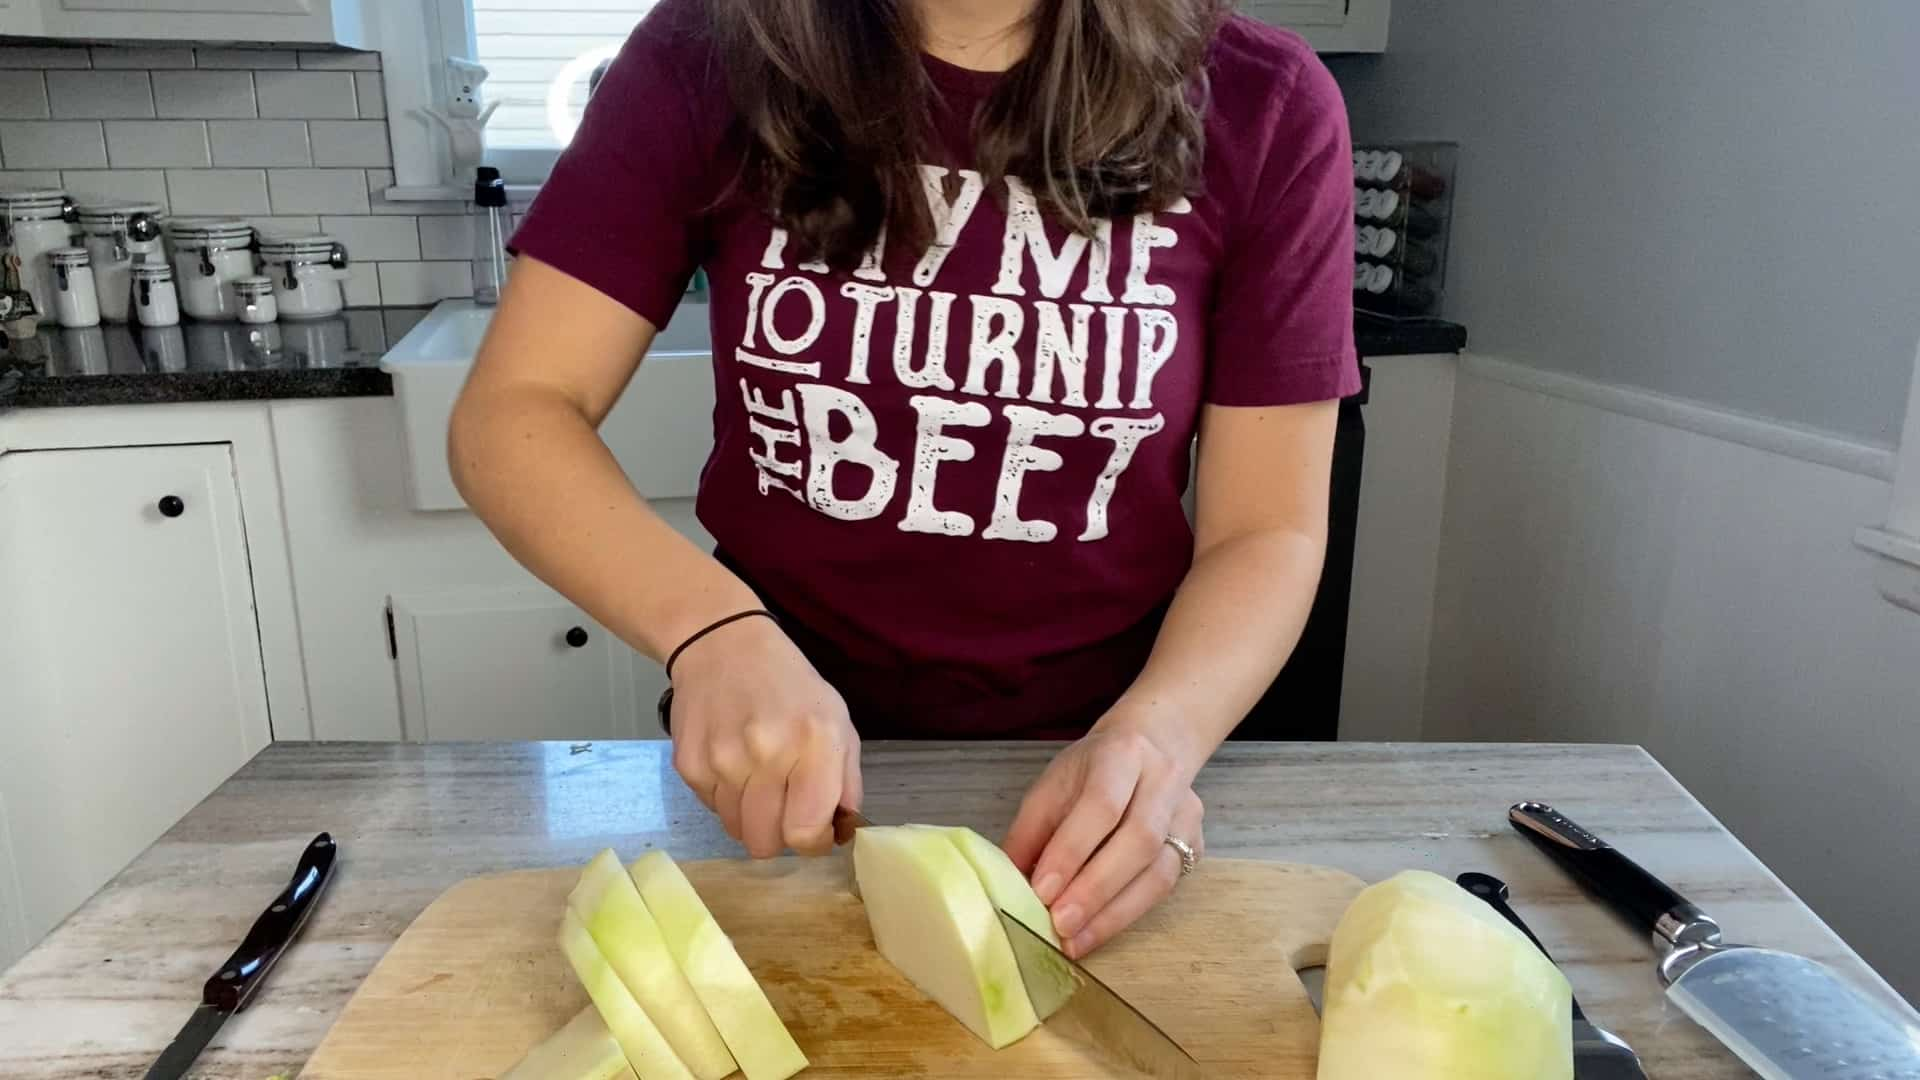 photo of a woman slicing a green kohlrabi into thick round slices